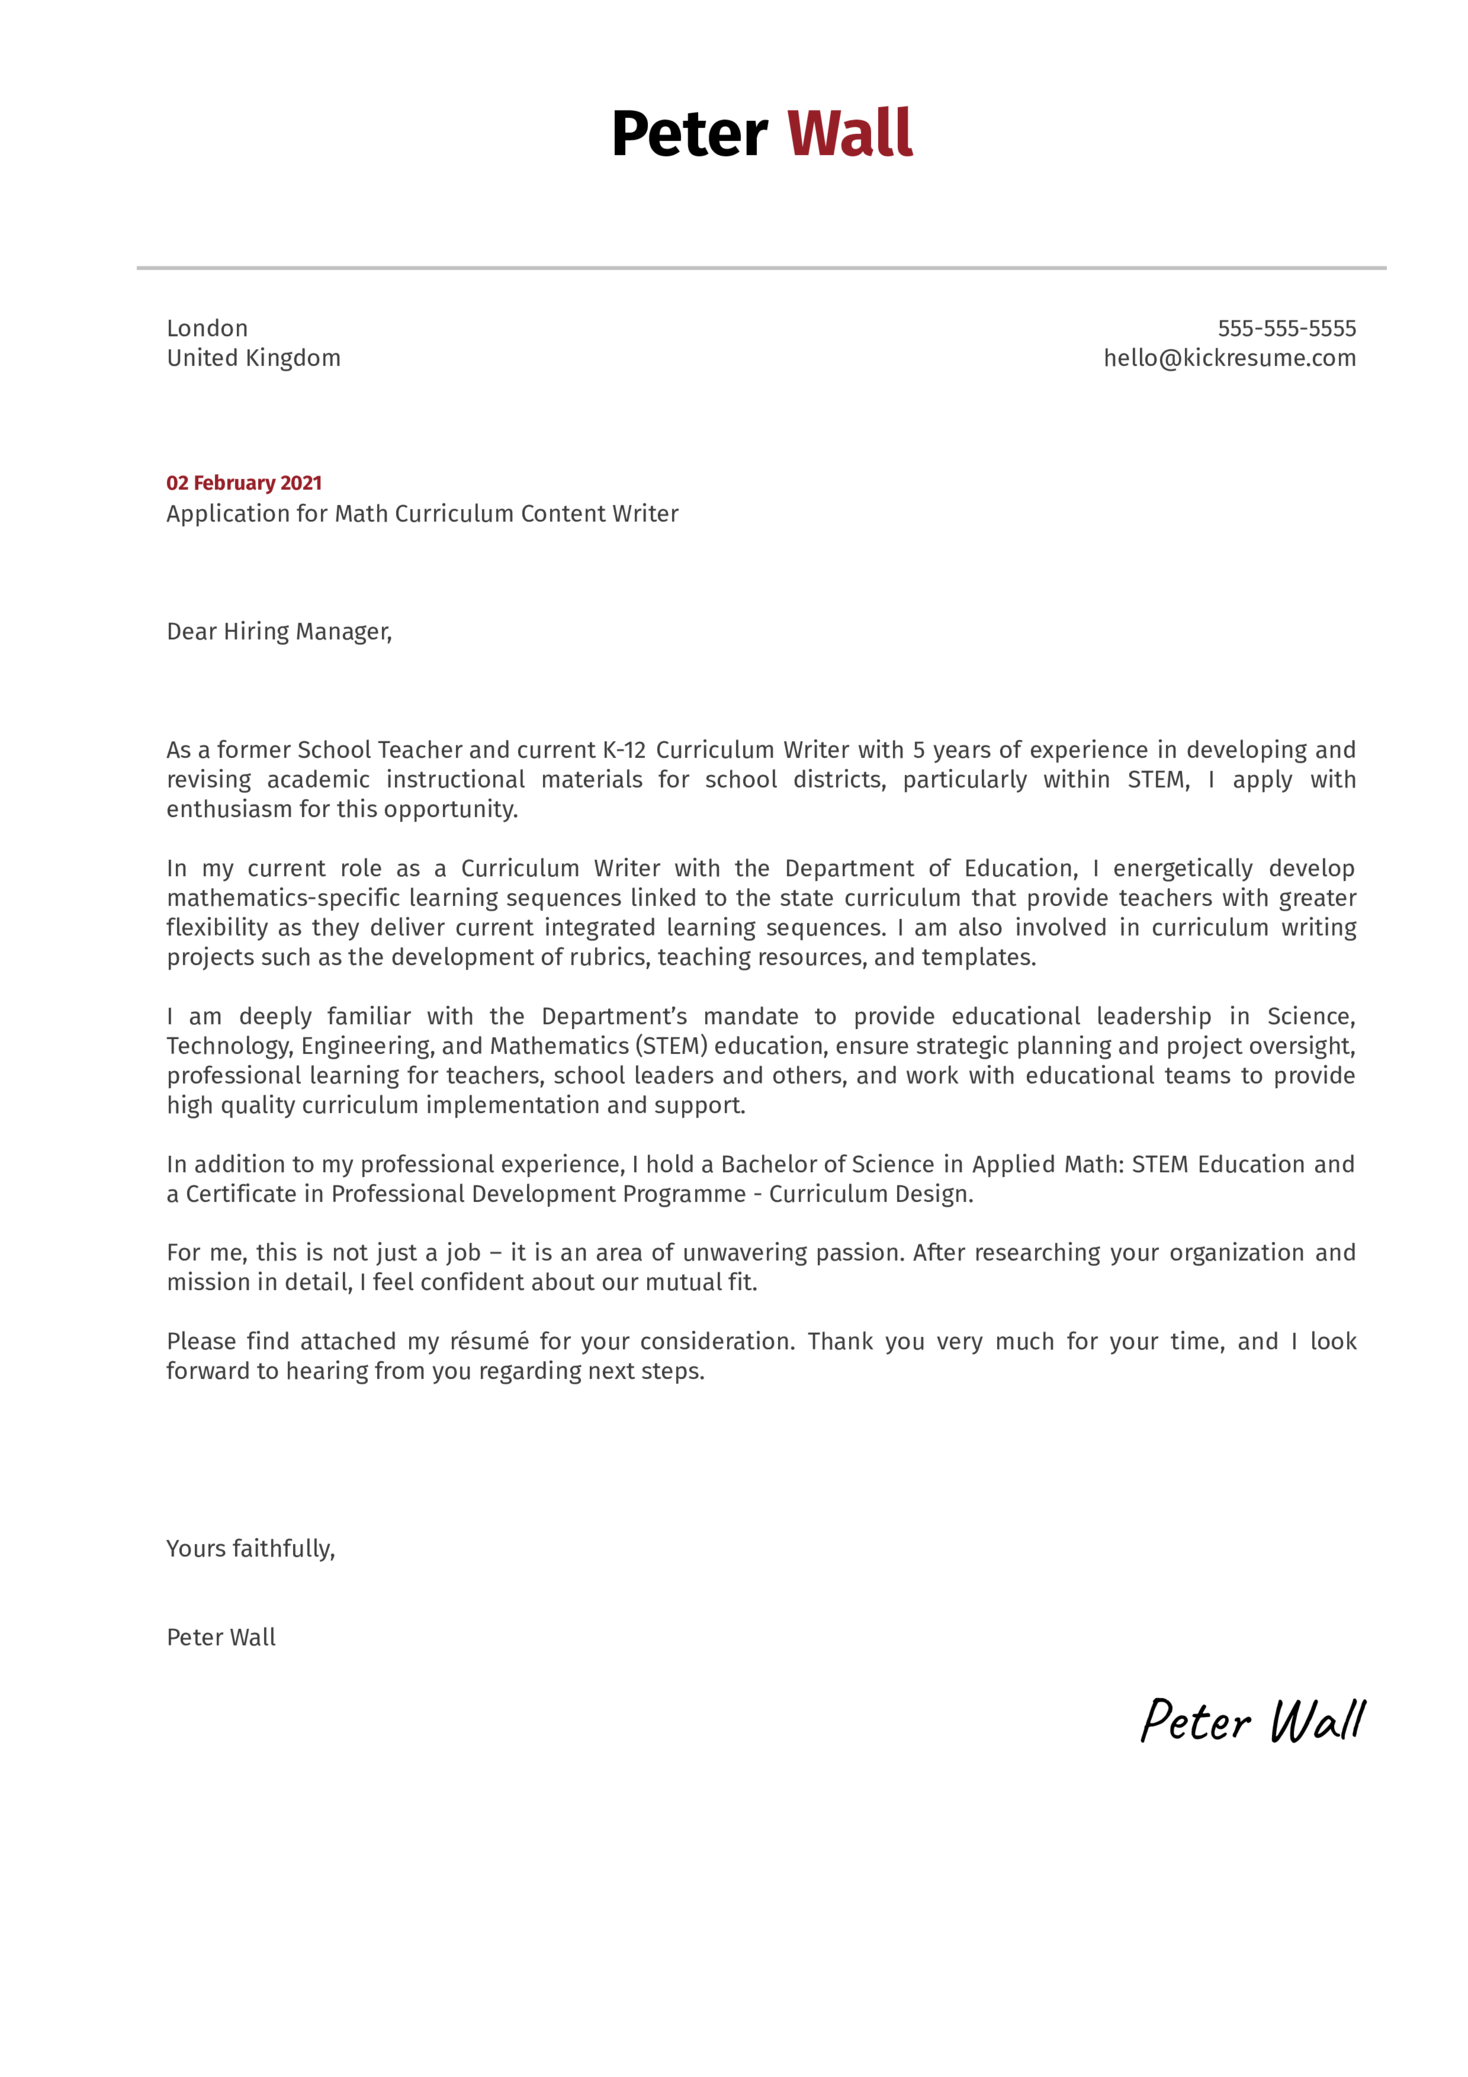 Math Curriculum Content Writer Cover Letter Sample